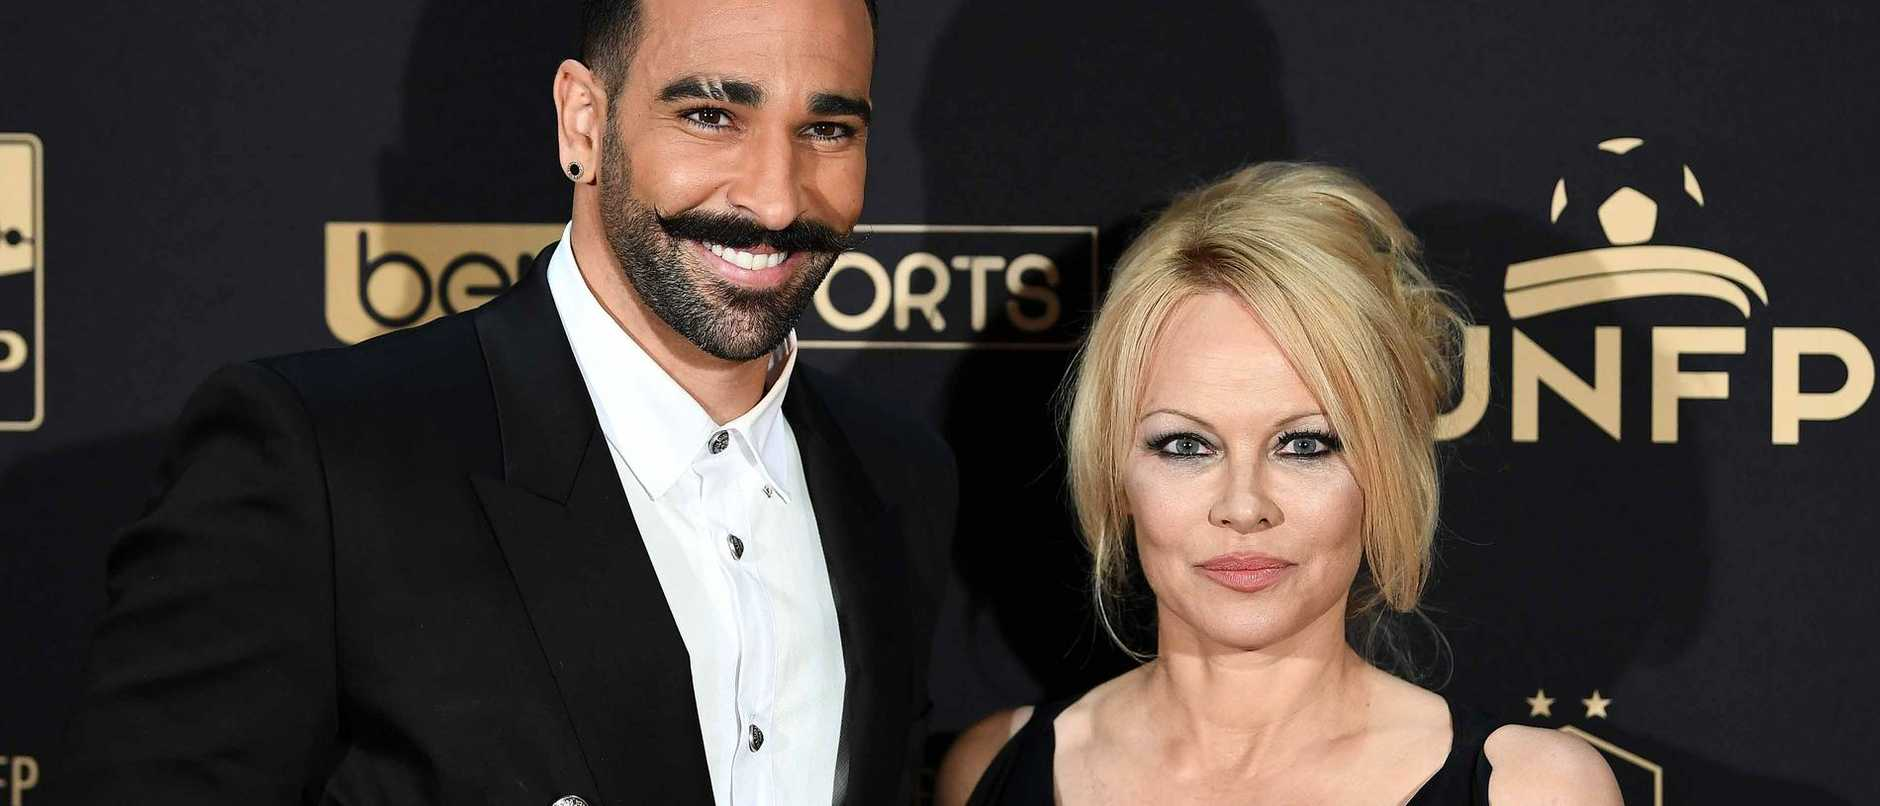 A former teammate of football star Adil Rami has revealed how the Frenchman used to brag about his wild sex life with Pamela Anderson.